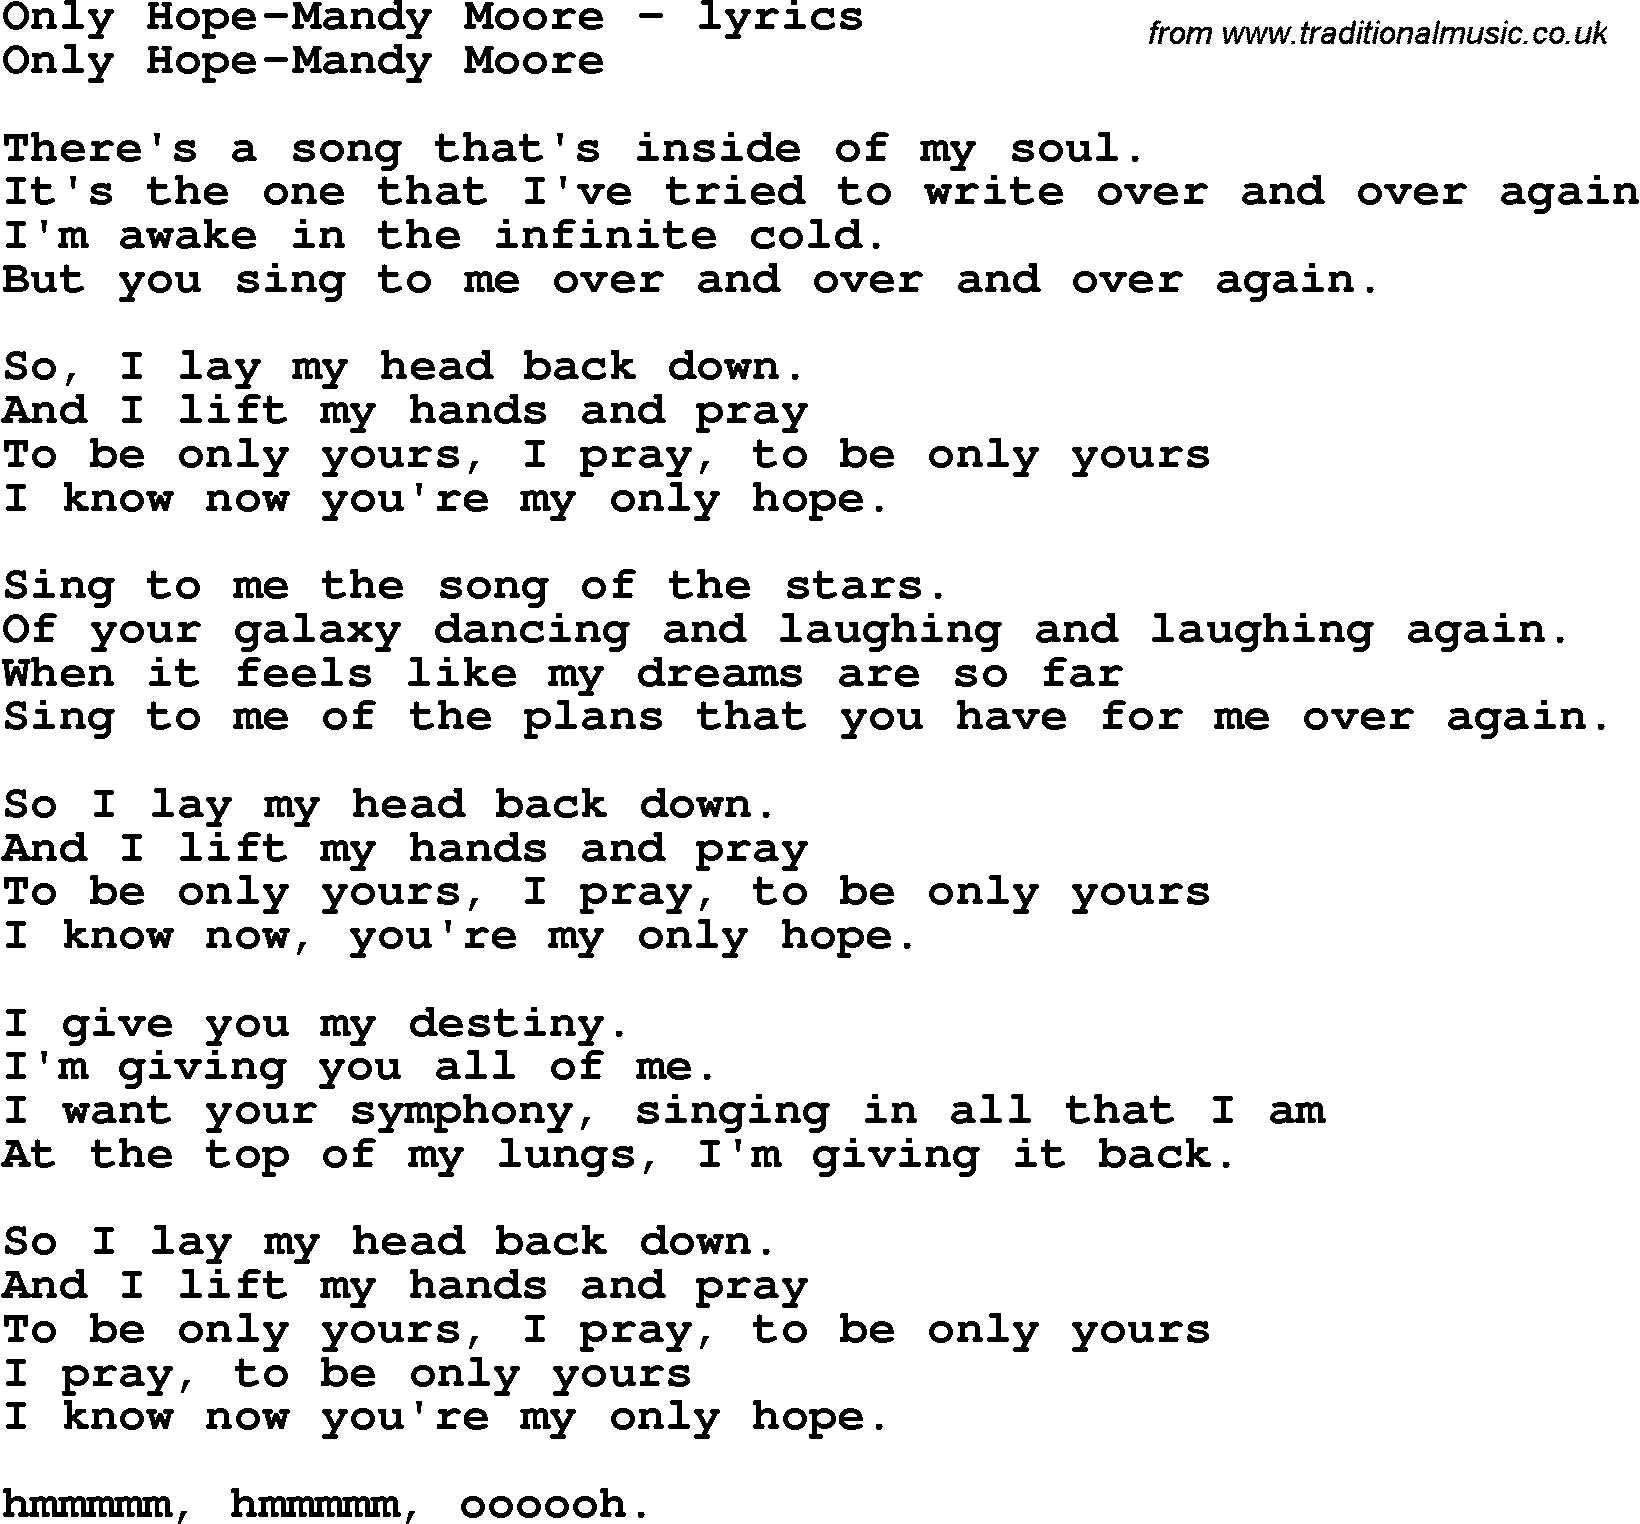 Moore lyrics